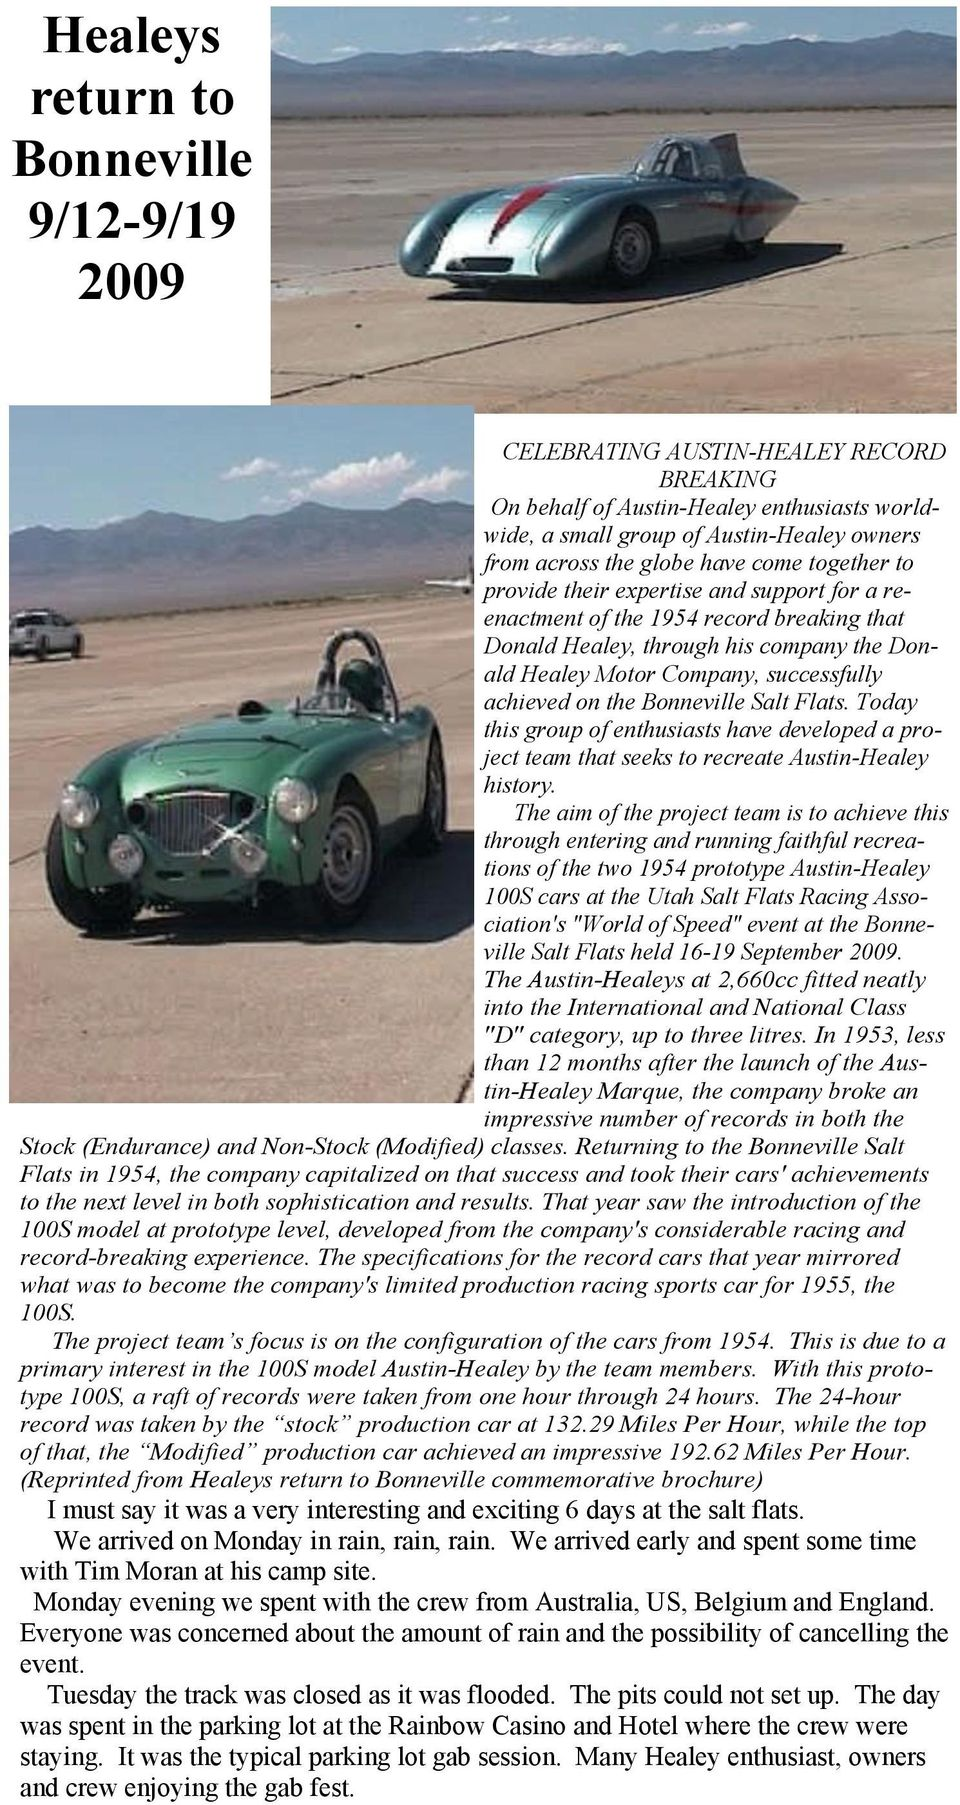 on the Bonneville Salt Flats. Today this group of enthusiasts have developed a project team that seeks to recreate Austin-Healey history.